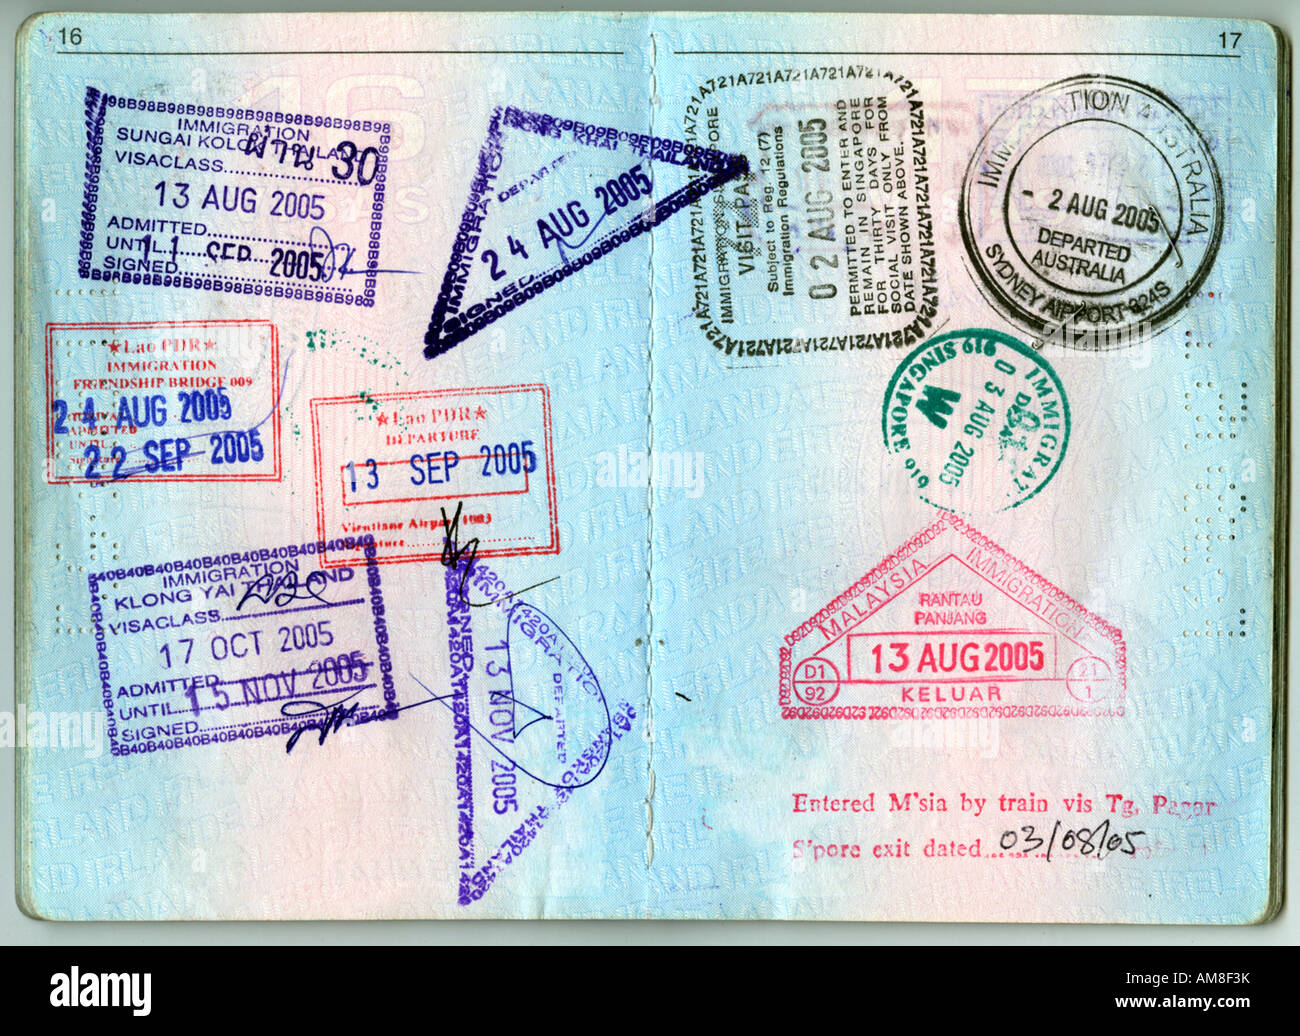 A high res scan of two pages of an Irish passport with visas